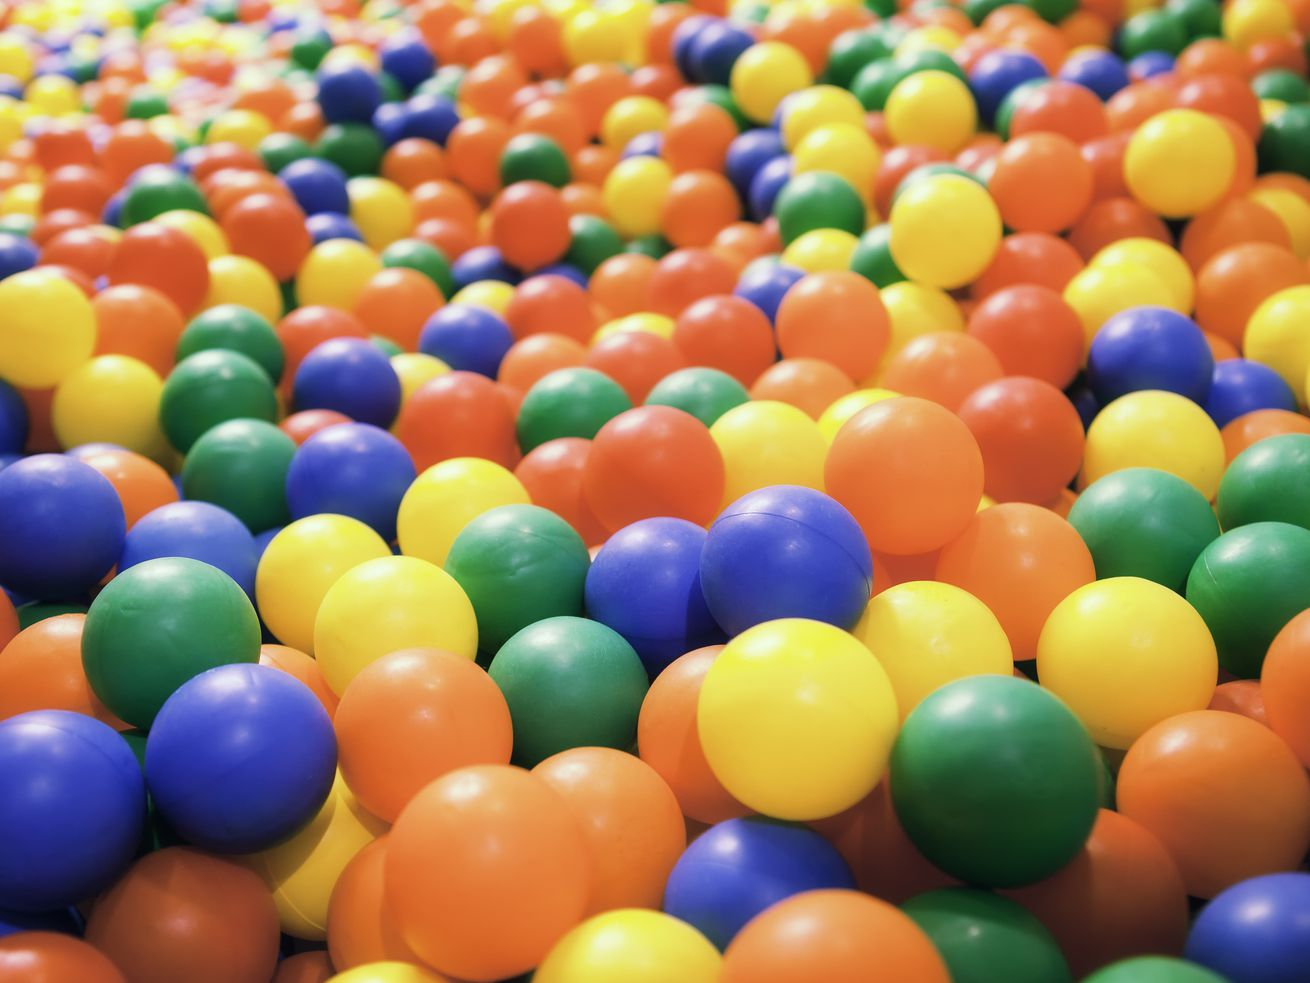 The first ball pit was opened in 1976.